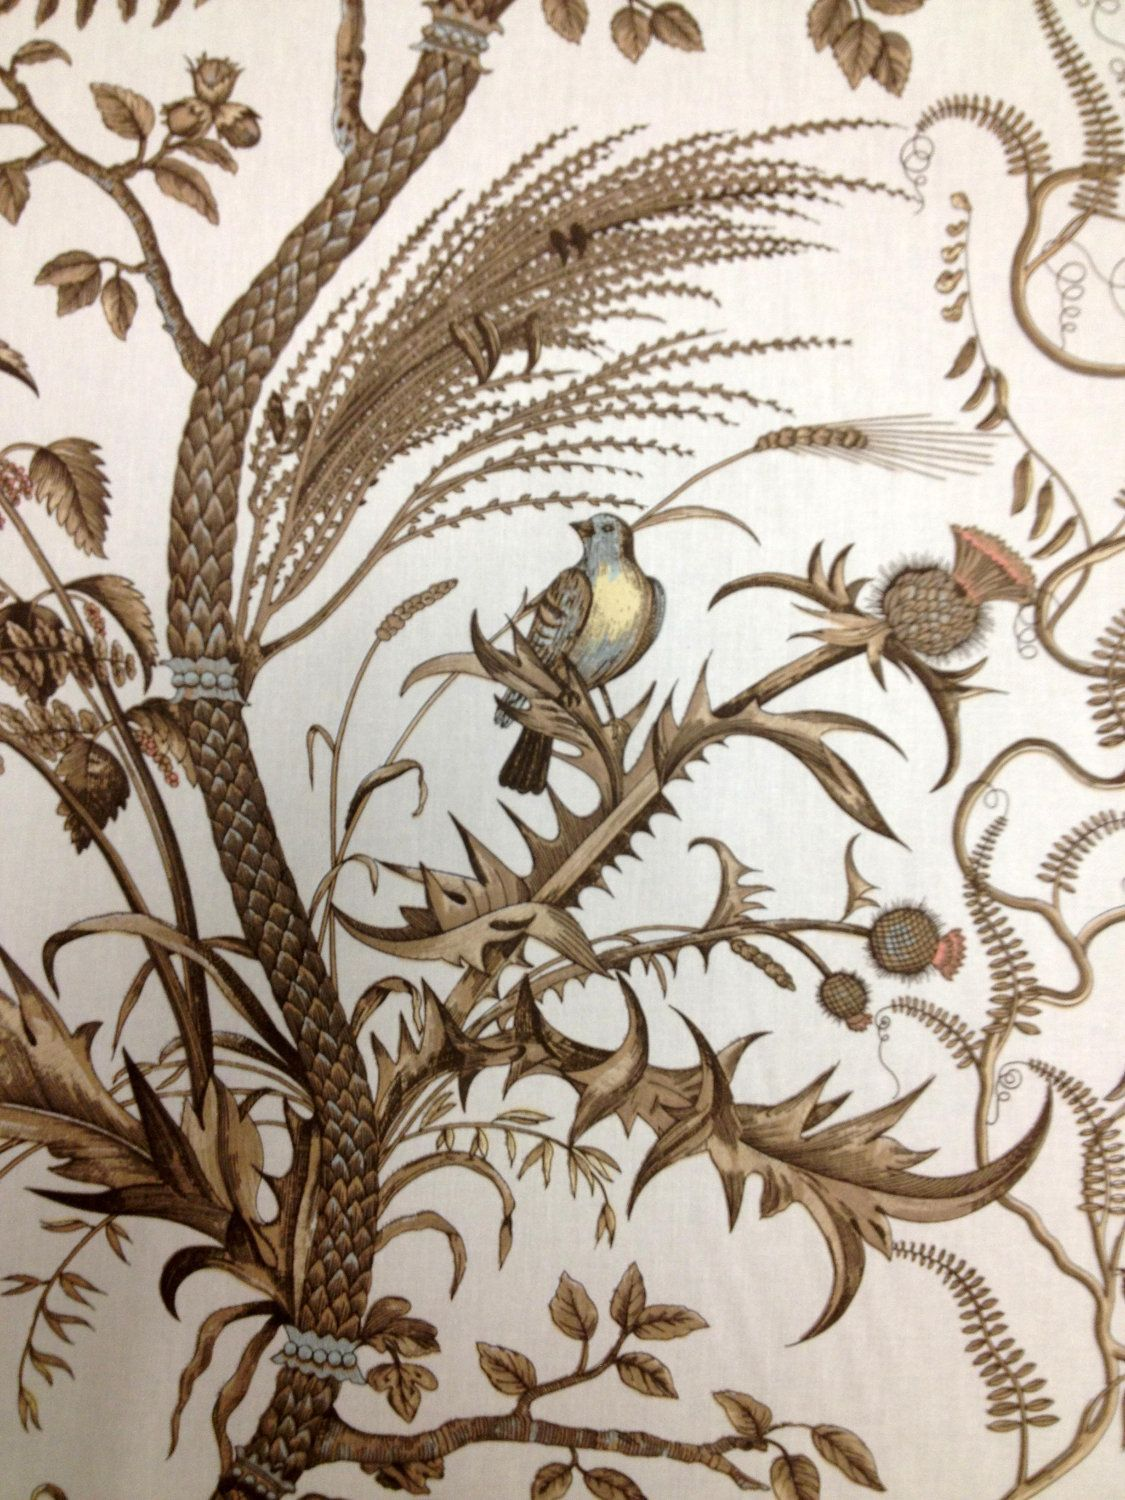 Thistle Fabric Thistle Art Pinterest Fabrics